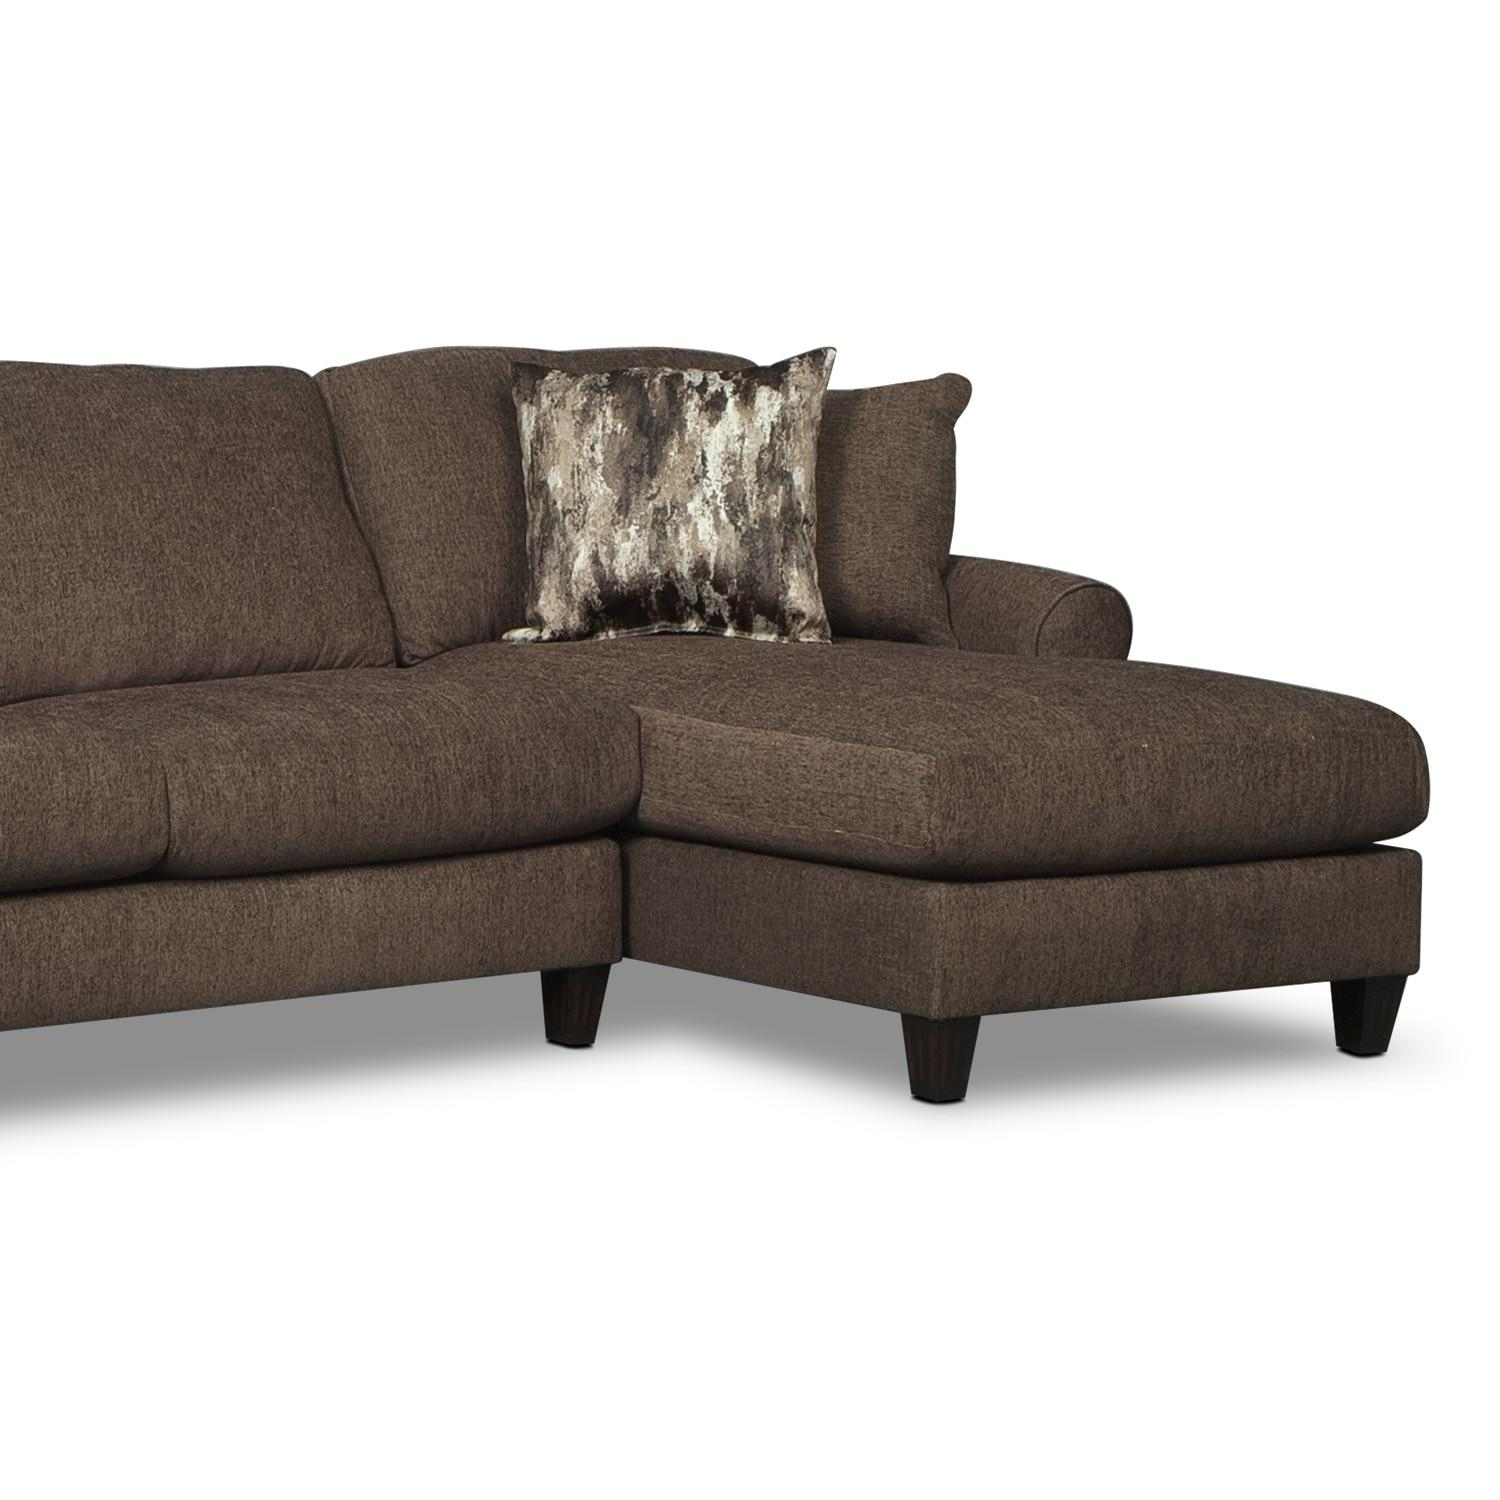 Karma 3 Piece Sectional With 2 Chaises – Smoke | Value City Furniture With Sectional With 2 Chaises (Image 8 of 20)